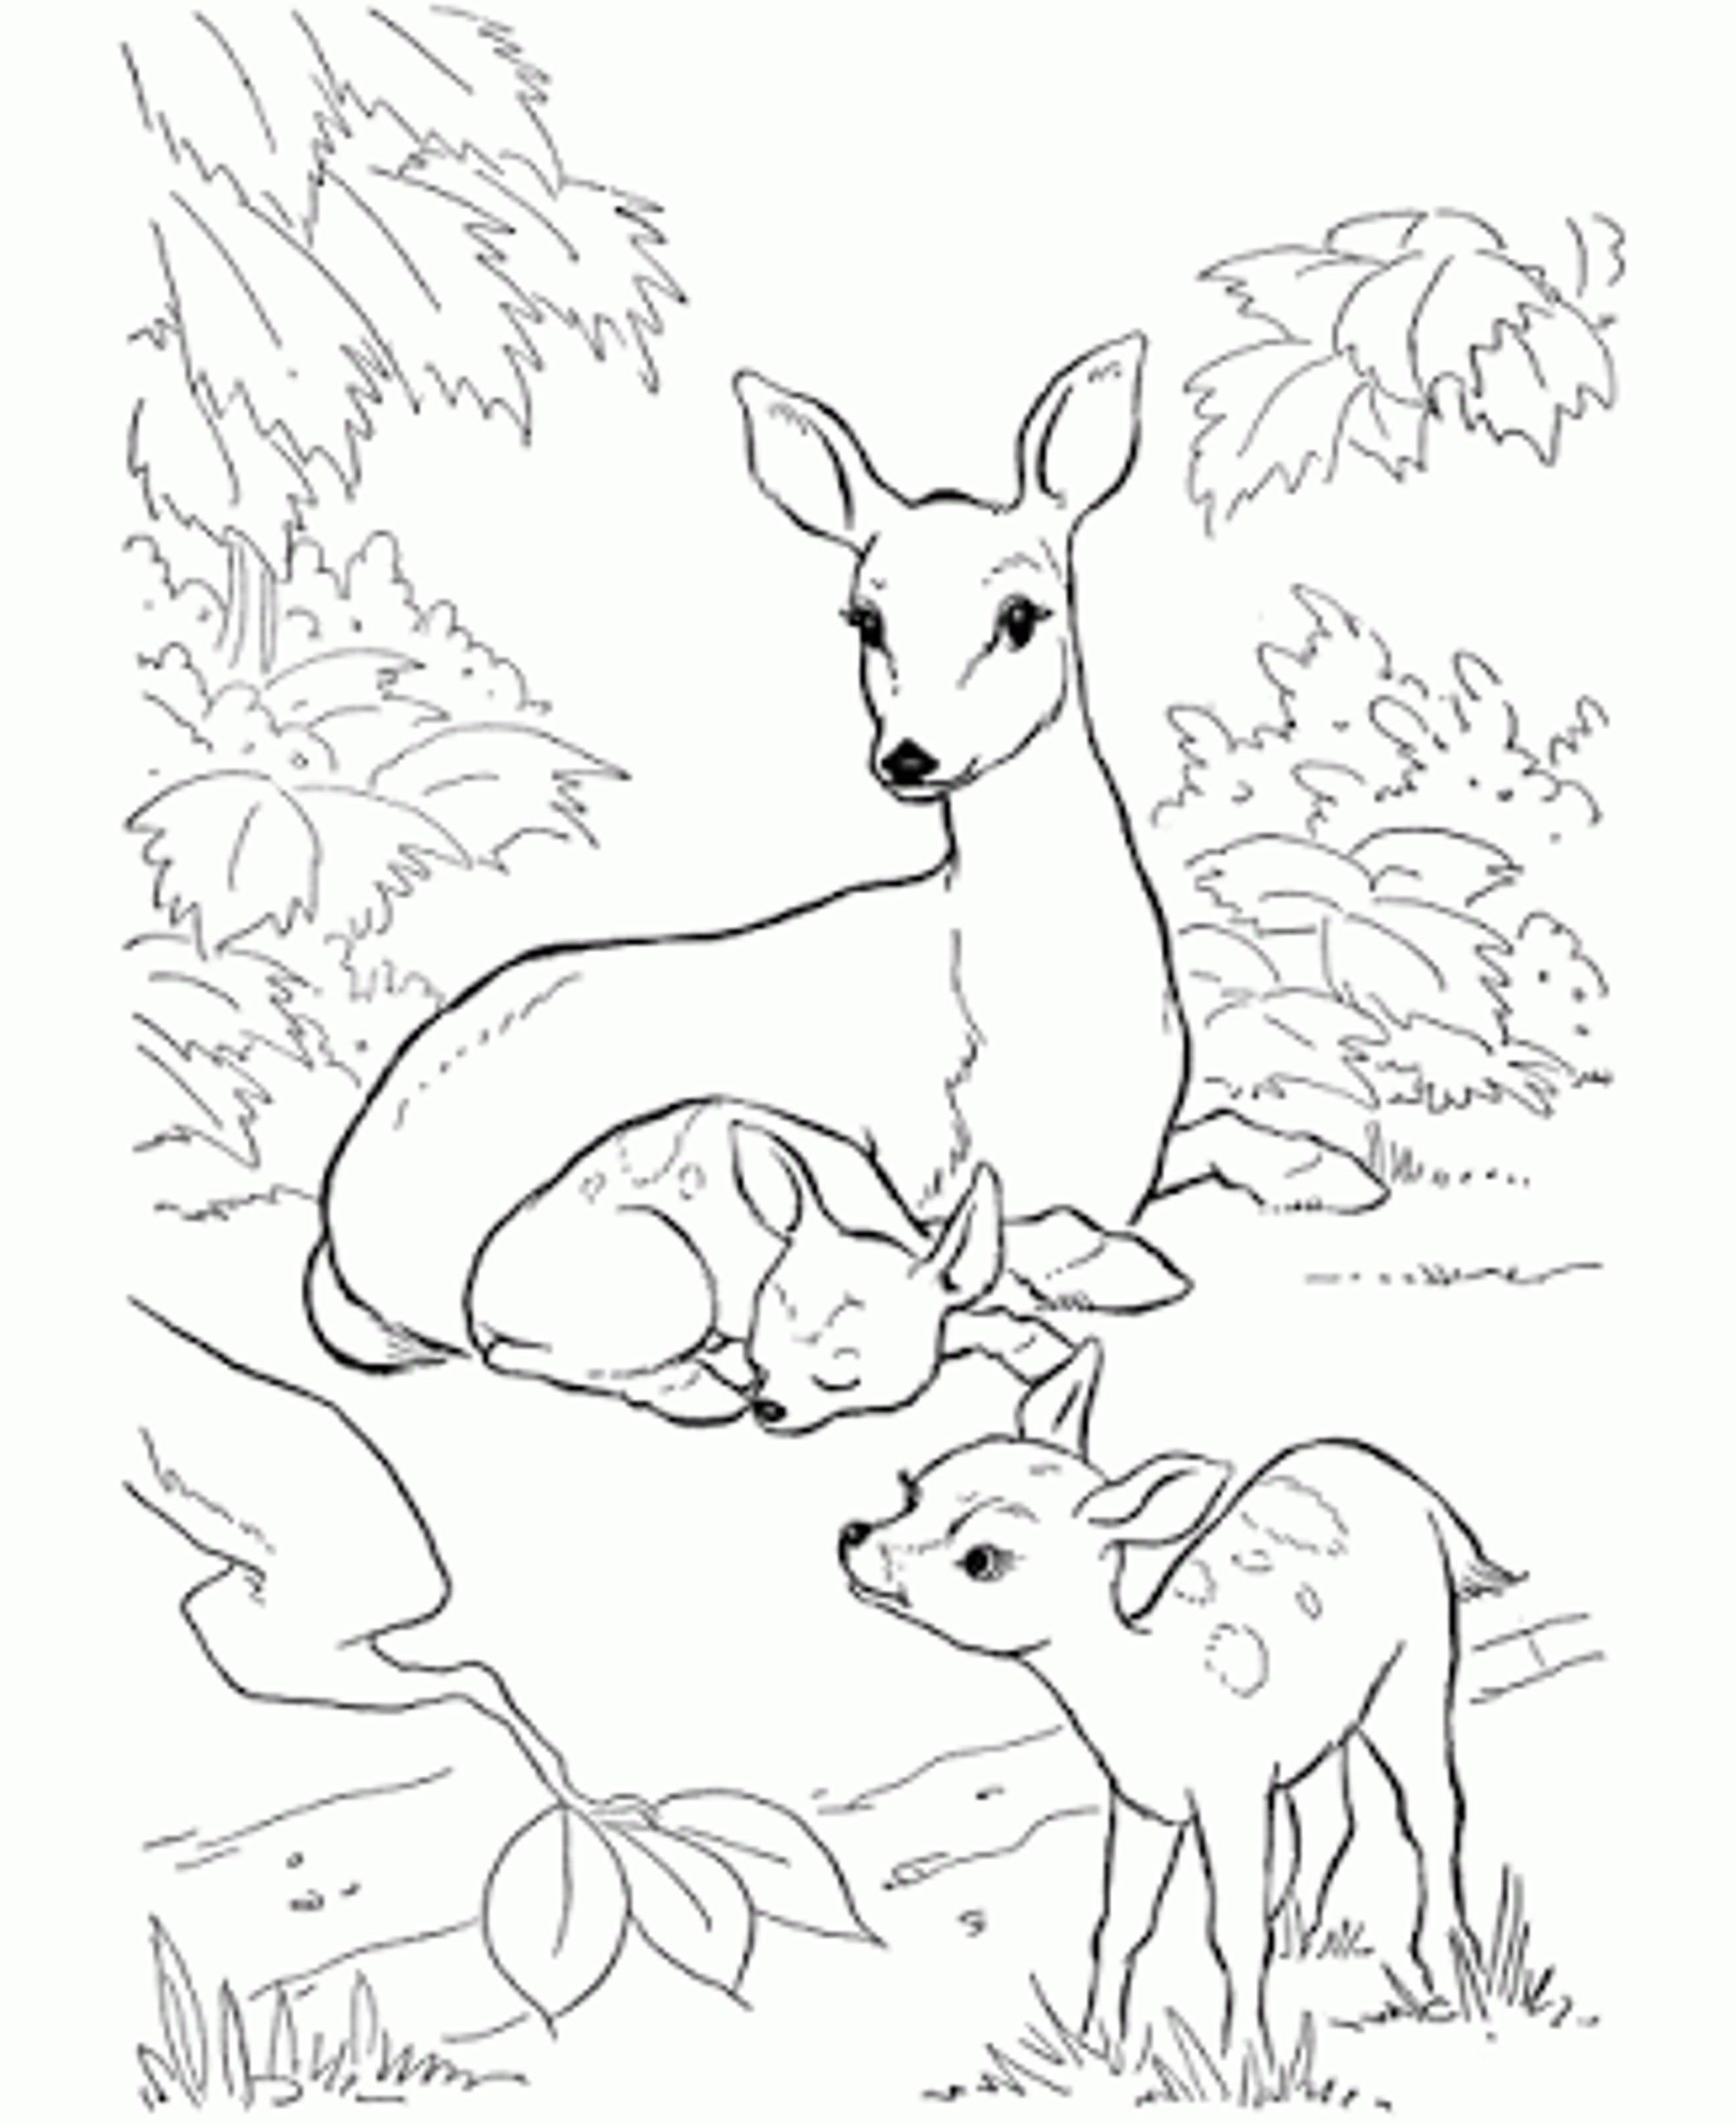 Drawing pages of deer - Baby Deer Coloring Pages Printable Kids Colouring Pages